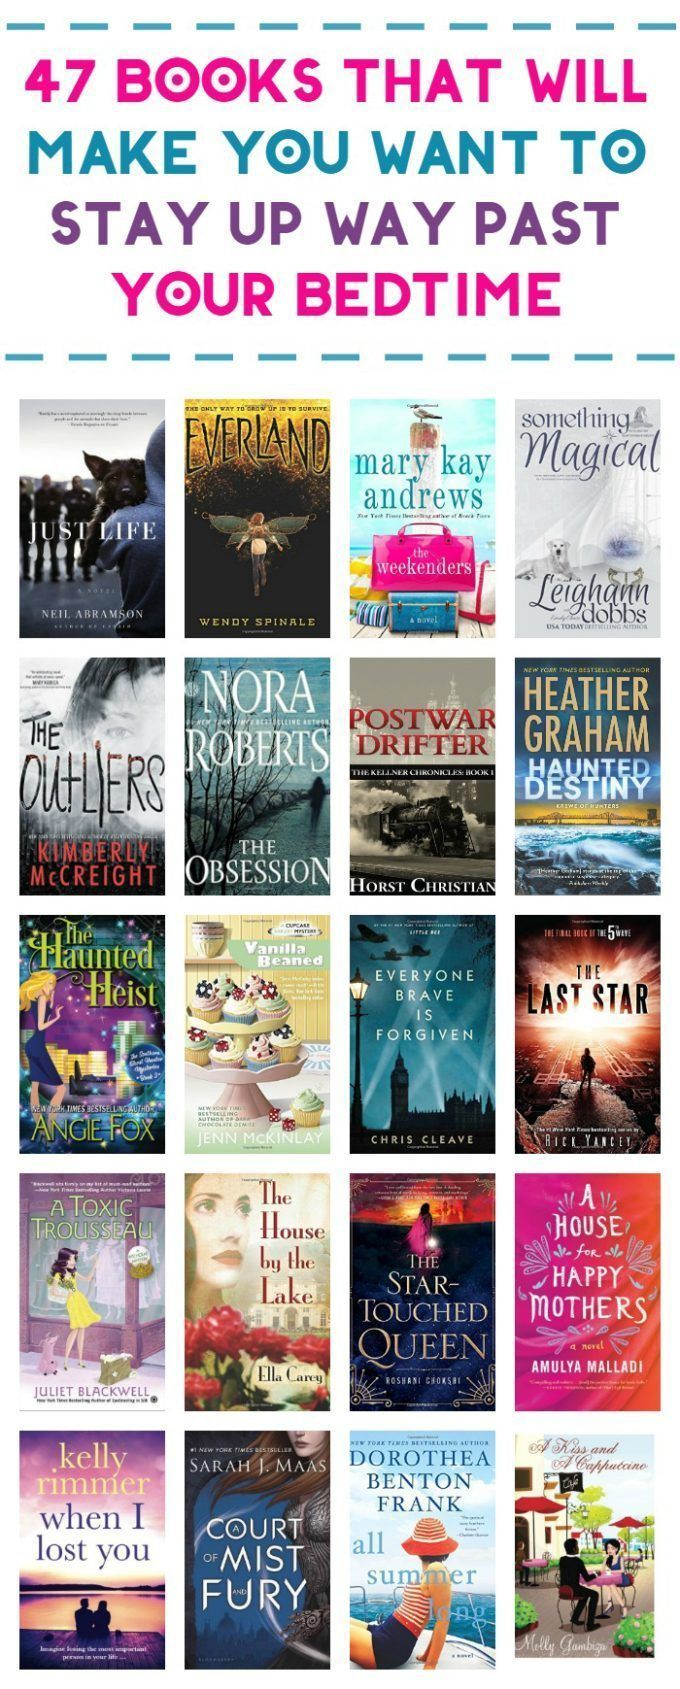 17 Best Images About Books On Pinterest  Good Books, Reading Lists And  Novels